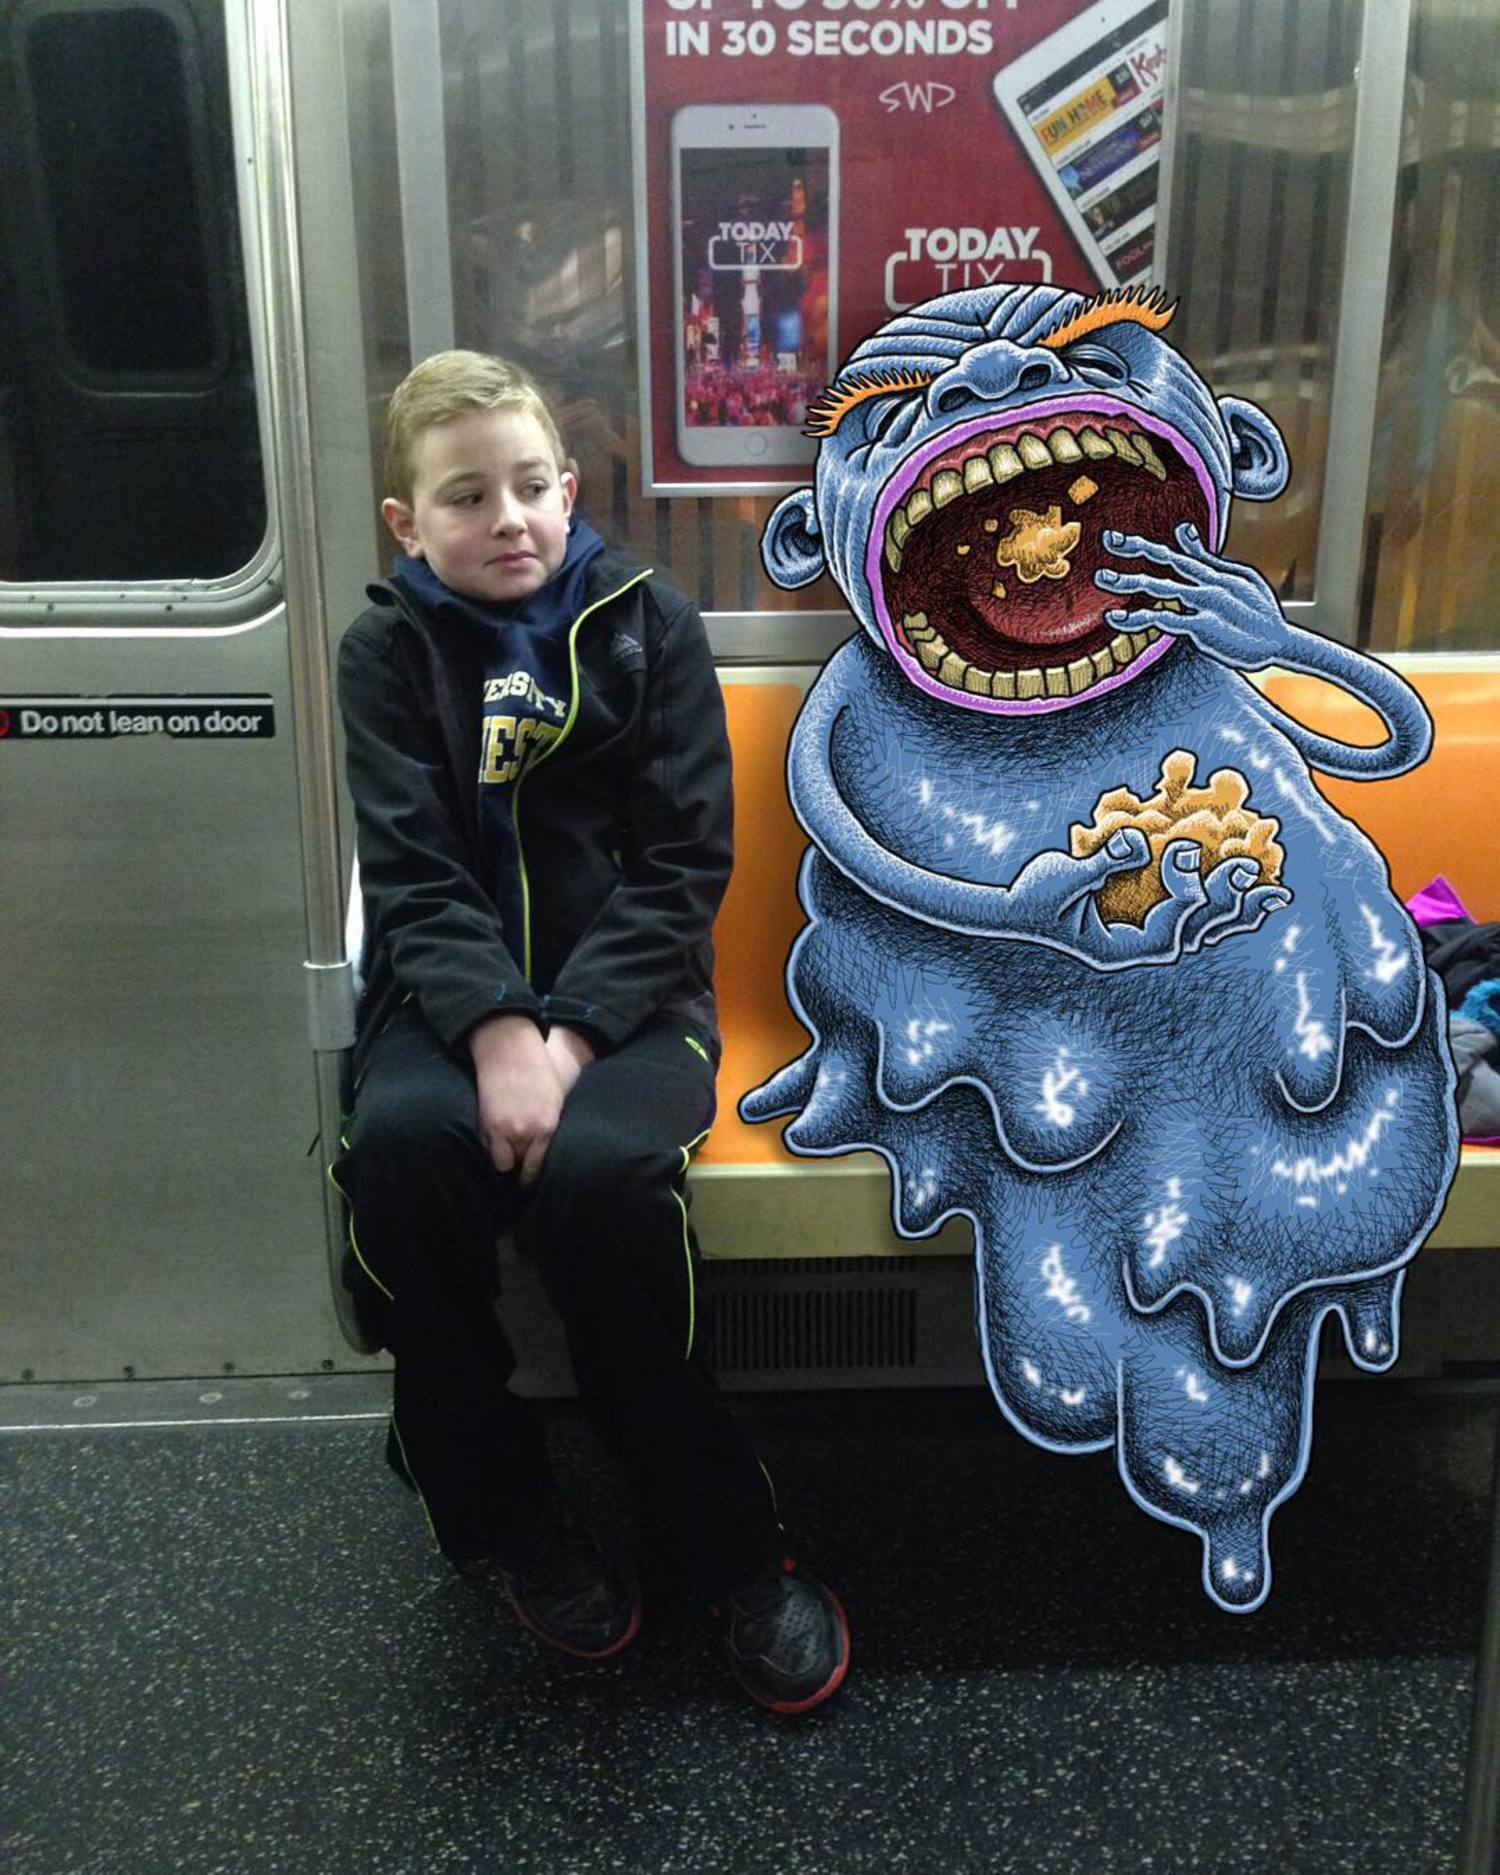 #subwaydoodle #subway #doodle #swd #nyc #ftrain #eating #eatingnyc